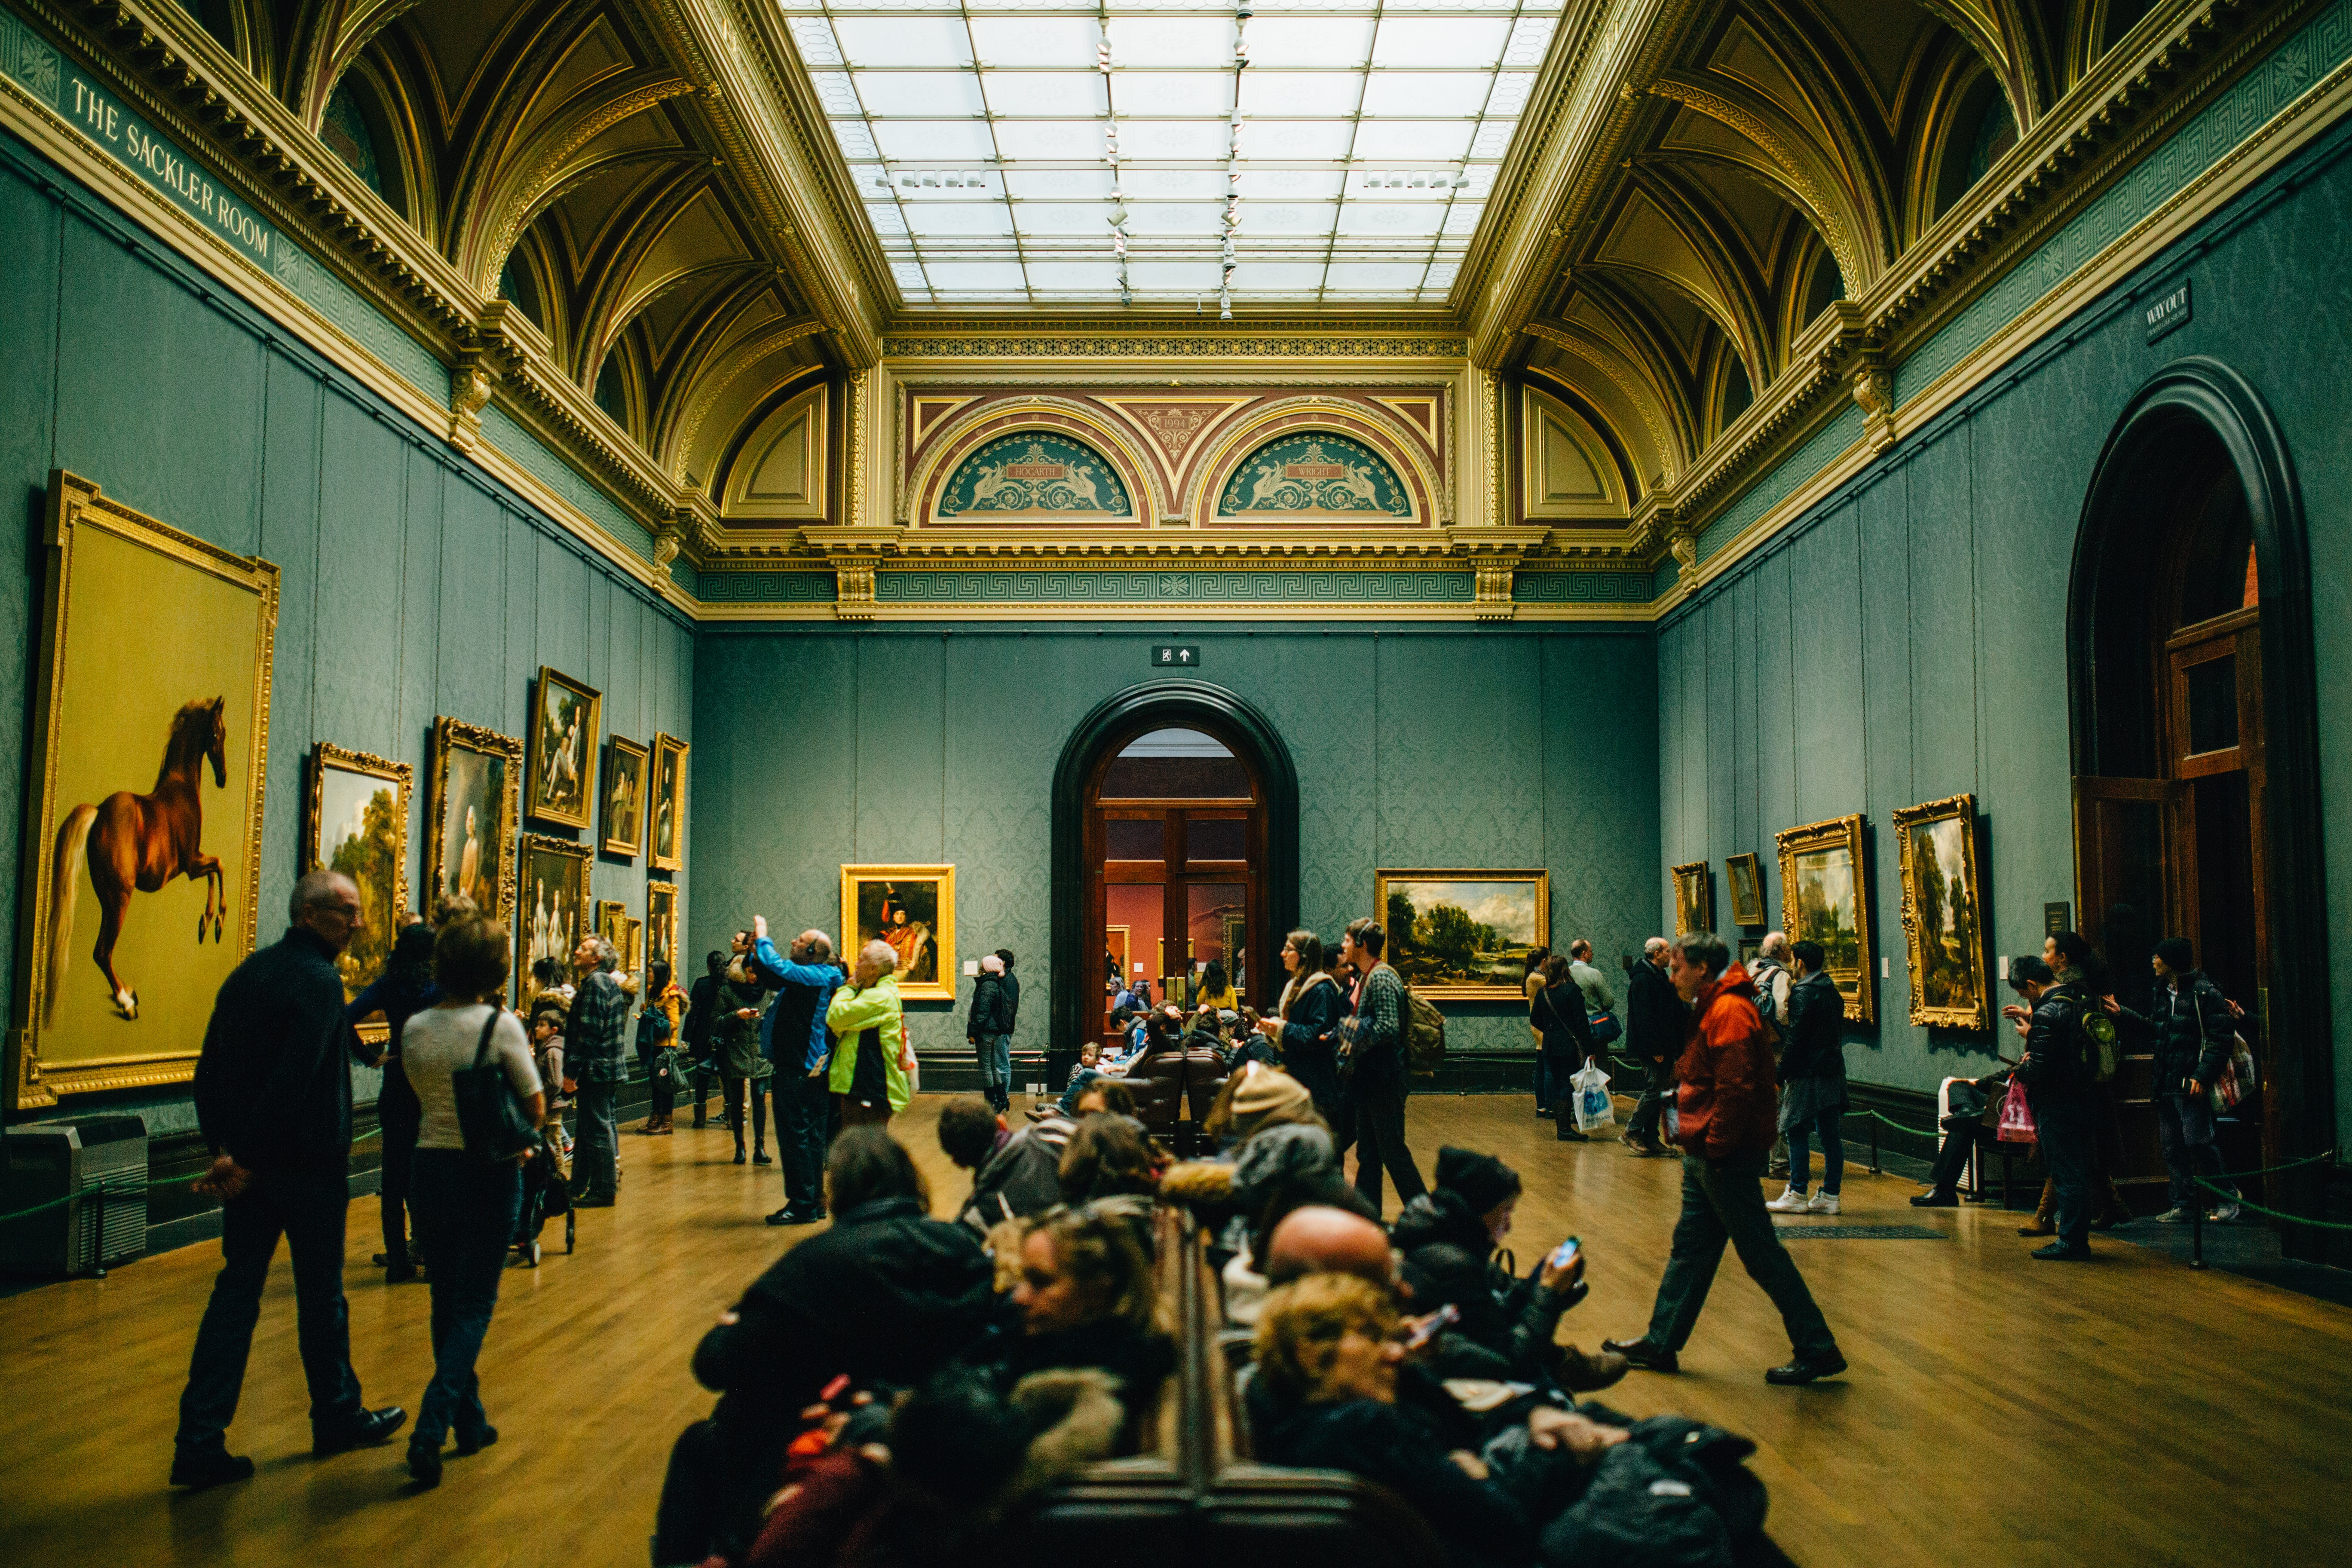 People Walking on Wooden Floor Inside Green Walled Building, Architecture, Art gallery, Cornices, Crowd, HQ Photo